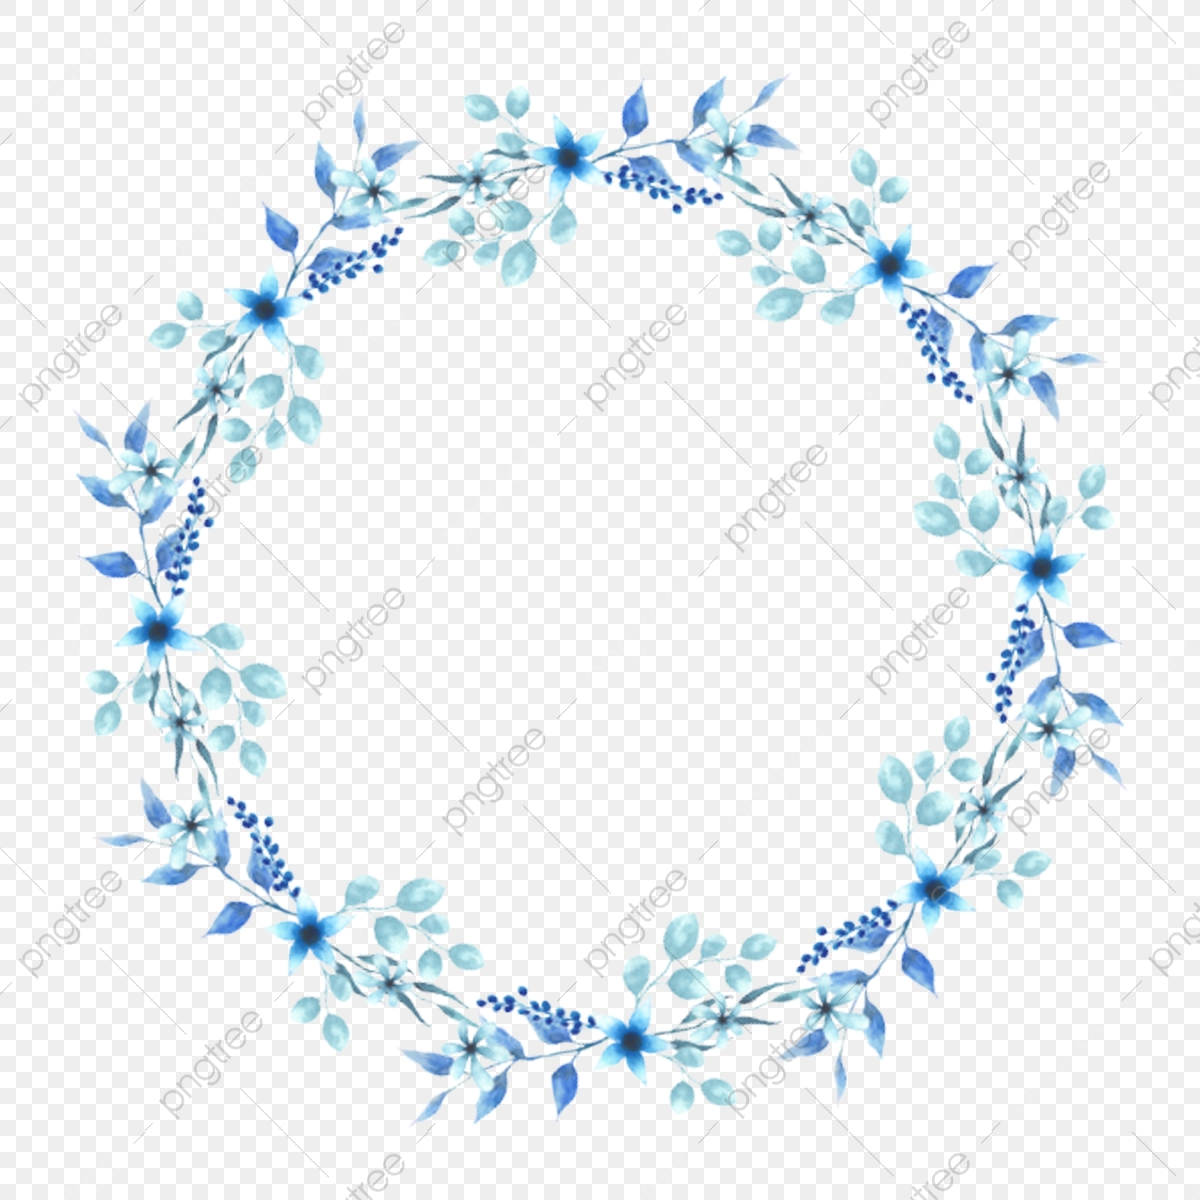 Watercolor Round Style Blue Floral Wreath, Wreath.